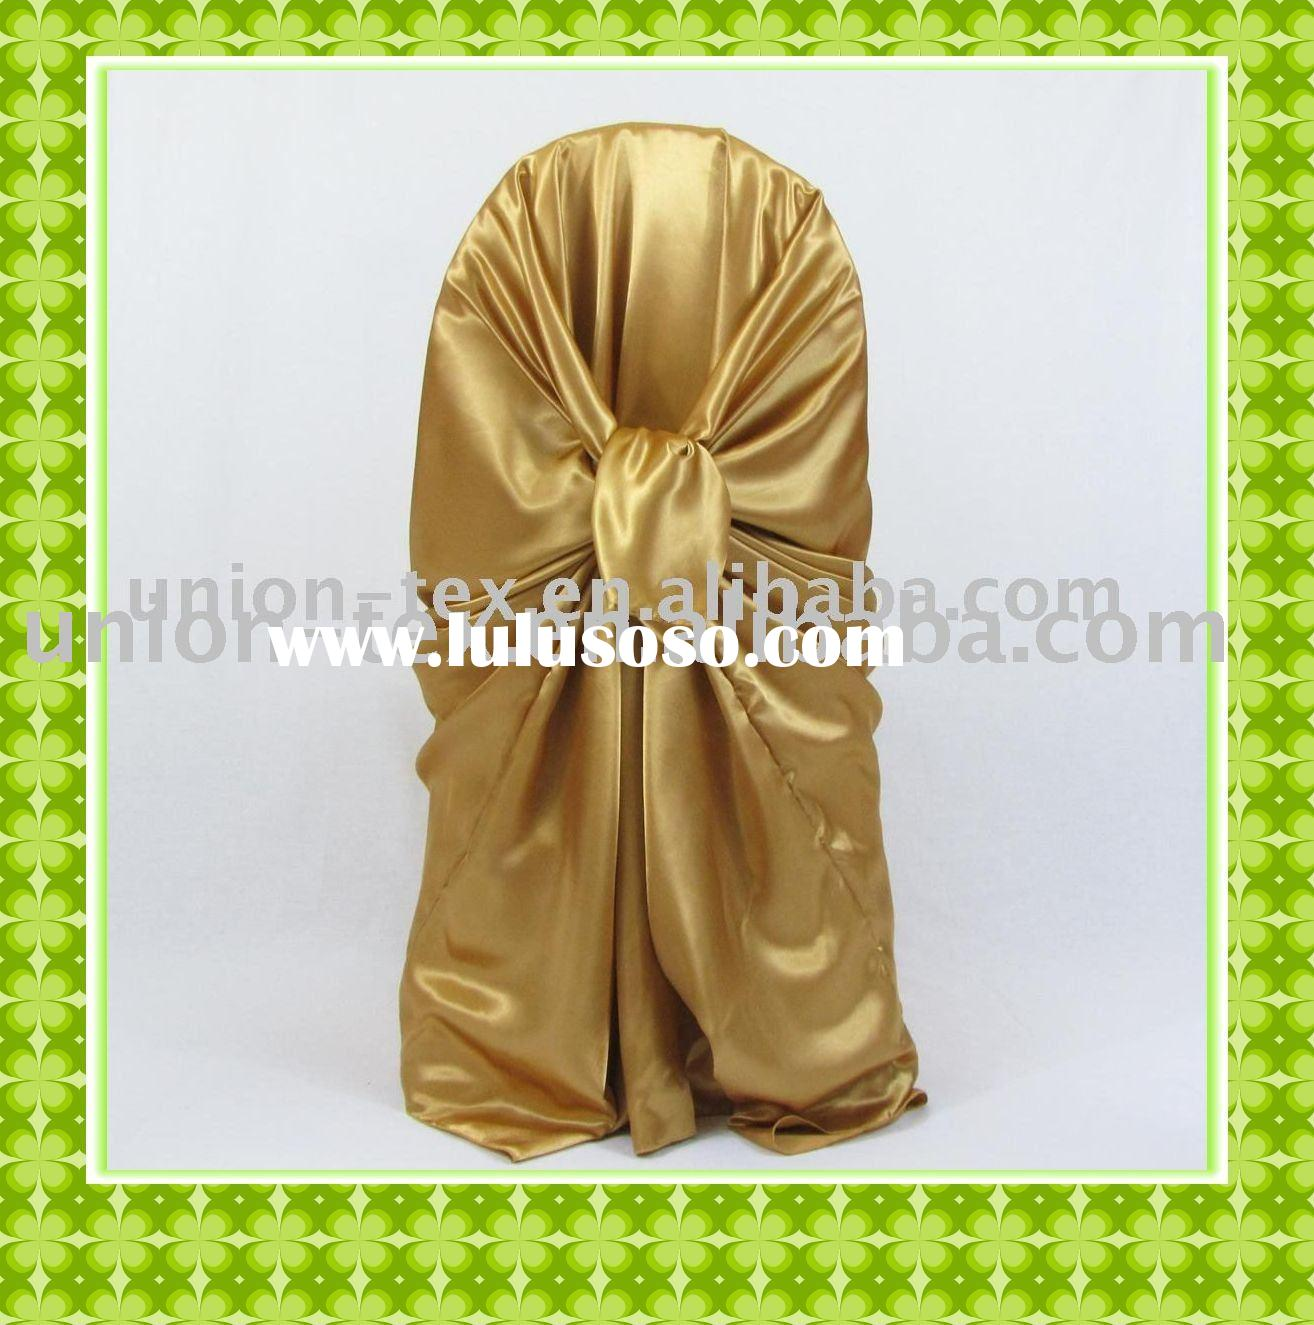 Universal Chair Covers For Weddings Self Tie Chair Cover